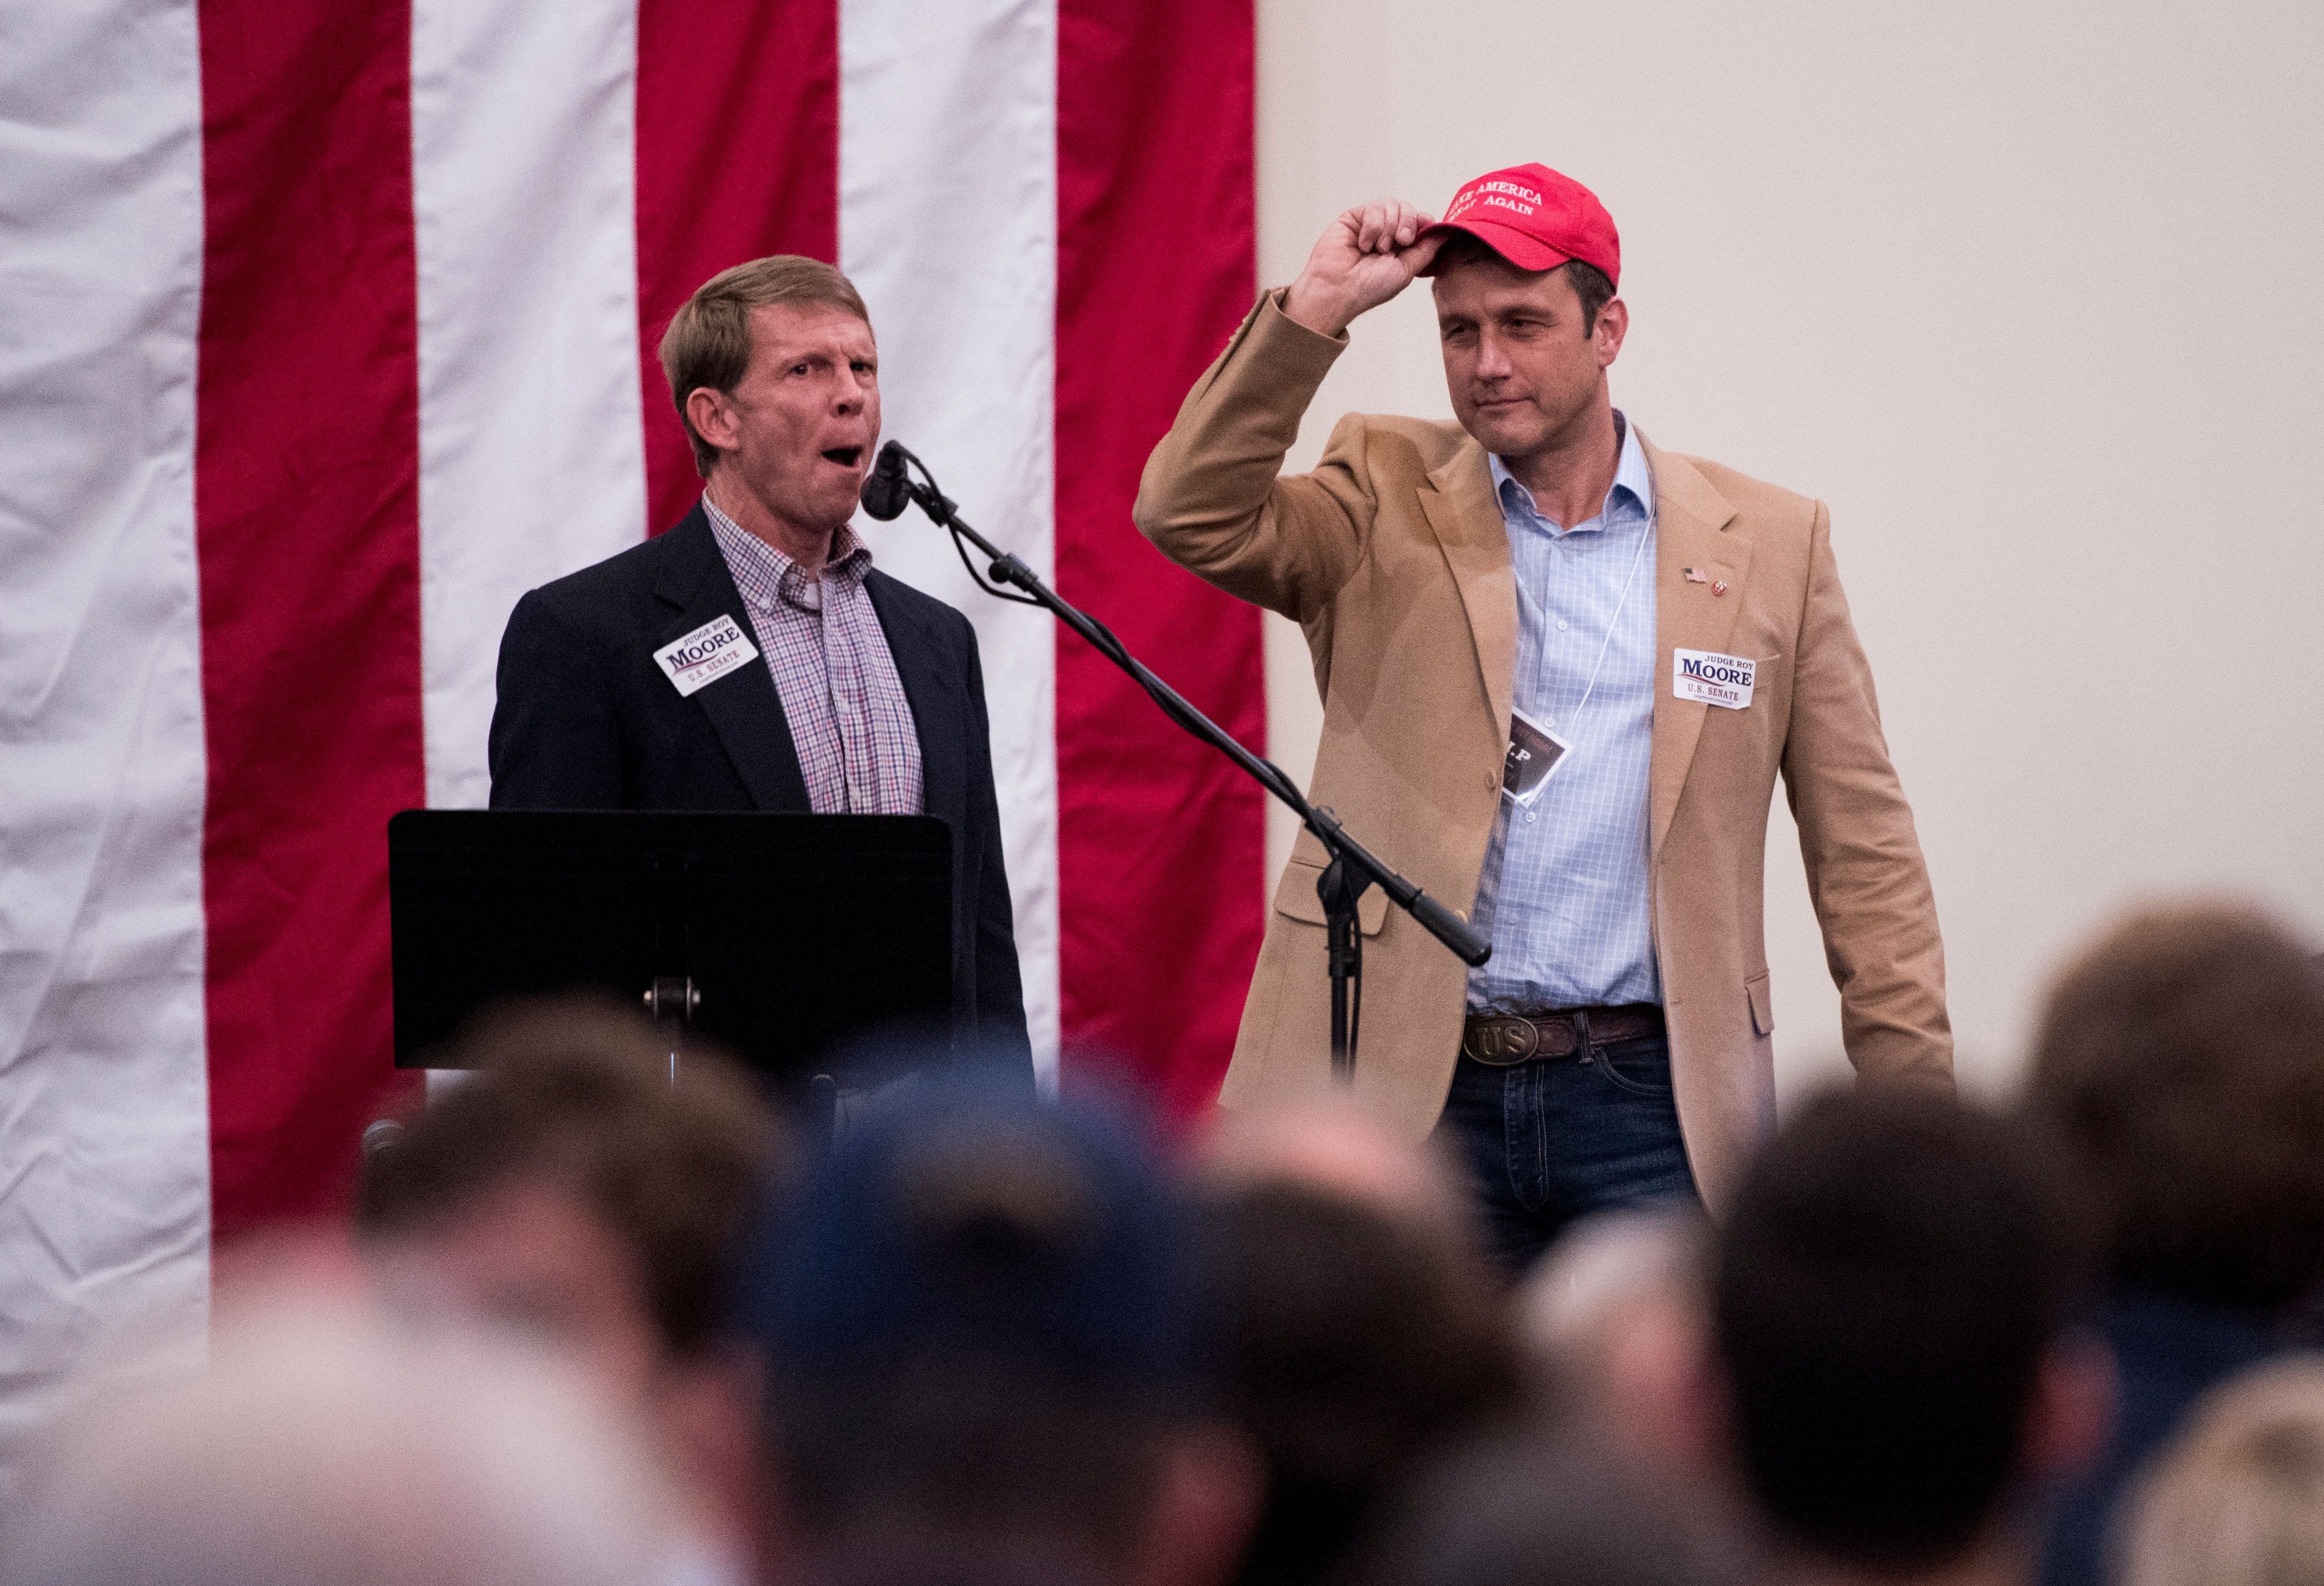 UNITED STATES - DECEMBER 11: Paul Nehlen, right, primary challenger to Speaker of the House Paul Ryan, R-Wisc., is introduced on stage during the  'Drain the Swamp' Roy Moore campaign rally in Midland City, Ala., on Monday, Dec. 11, 2017. (Photo By Bill Clark/CQ Roll Call)